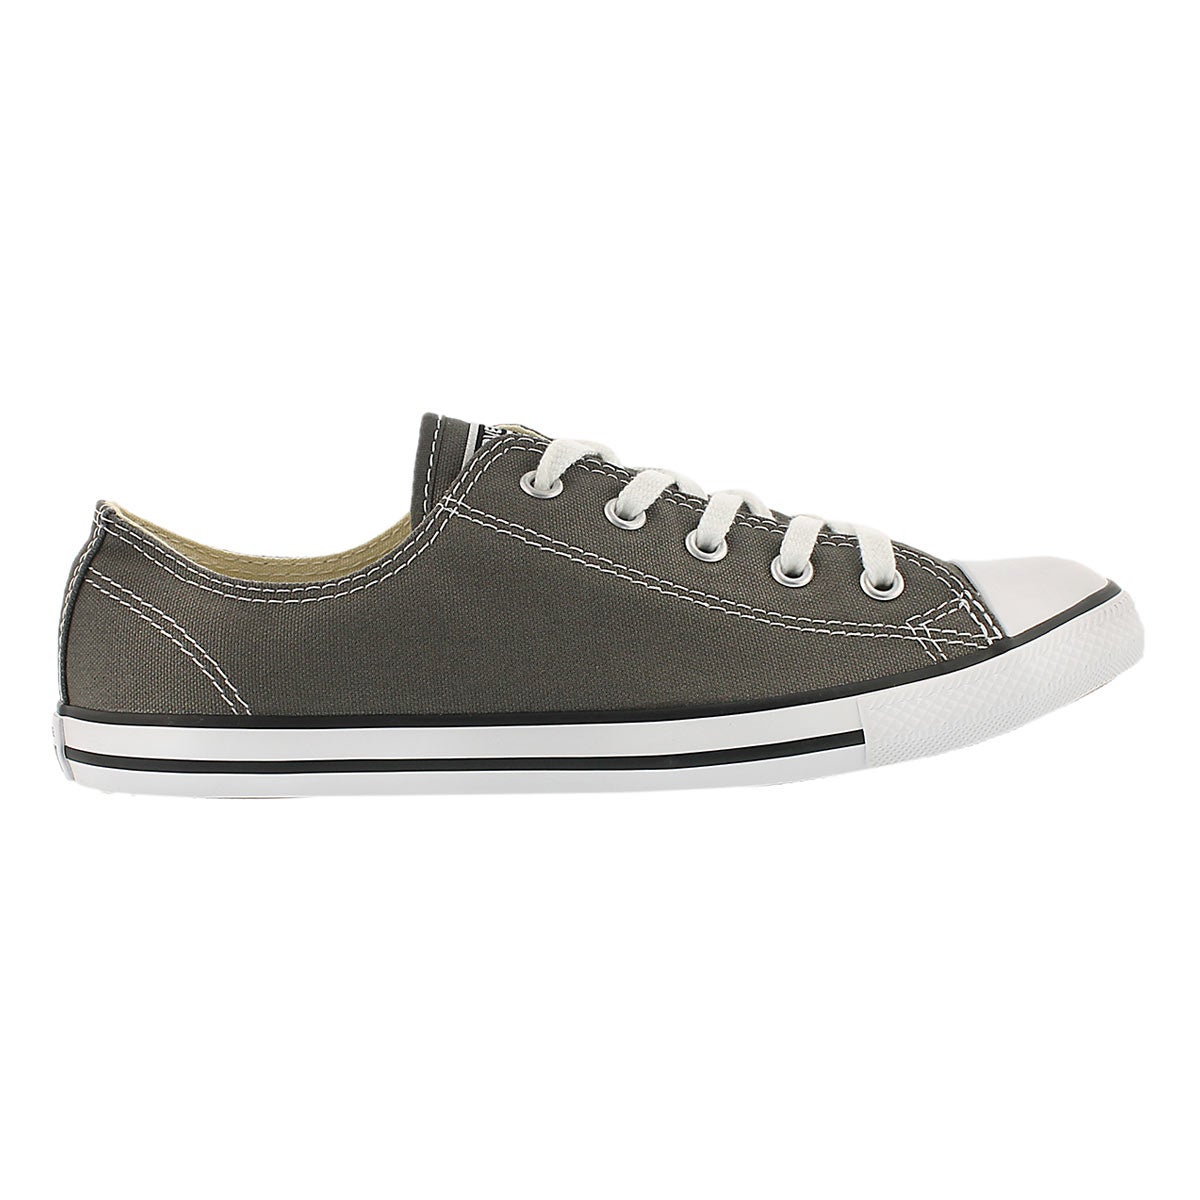 Lds CT AllStar Dainty Canvas charcoal ox